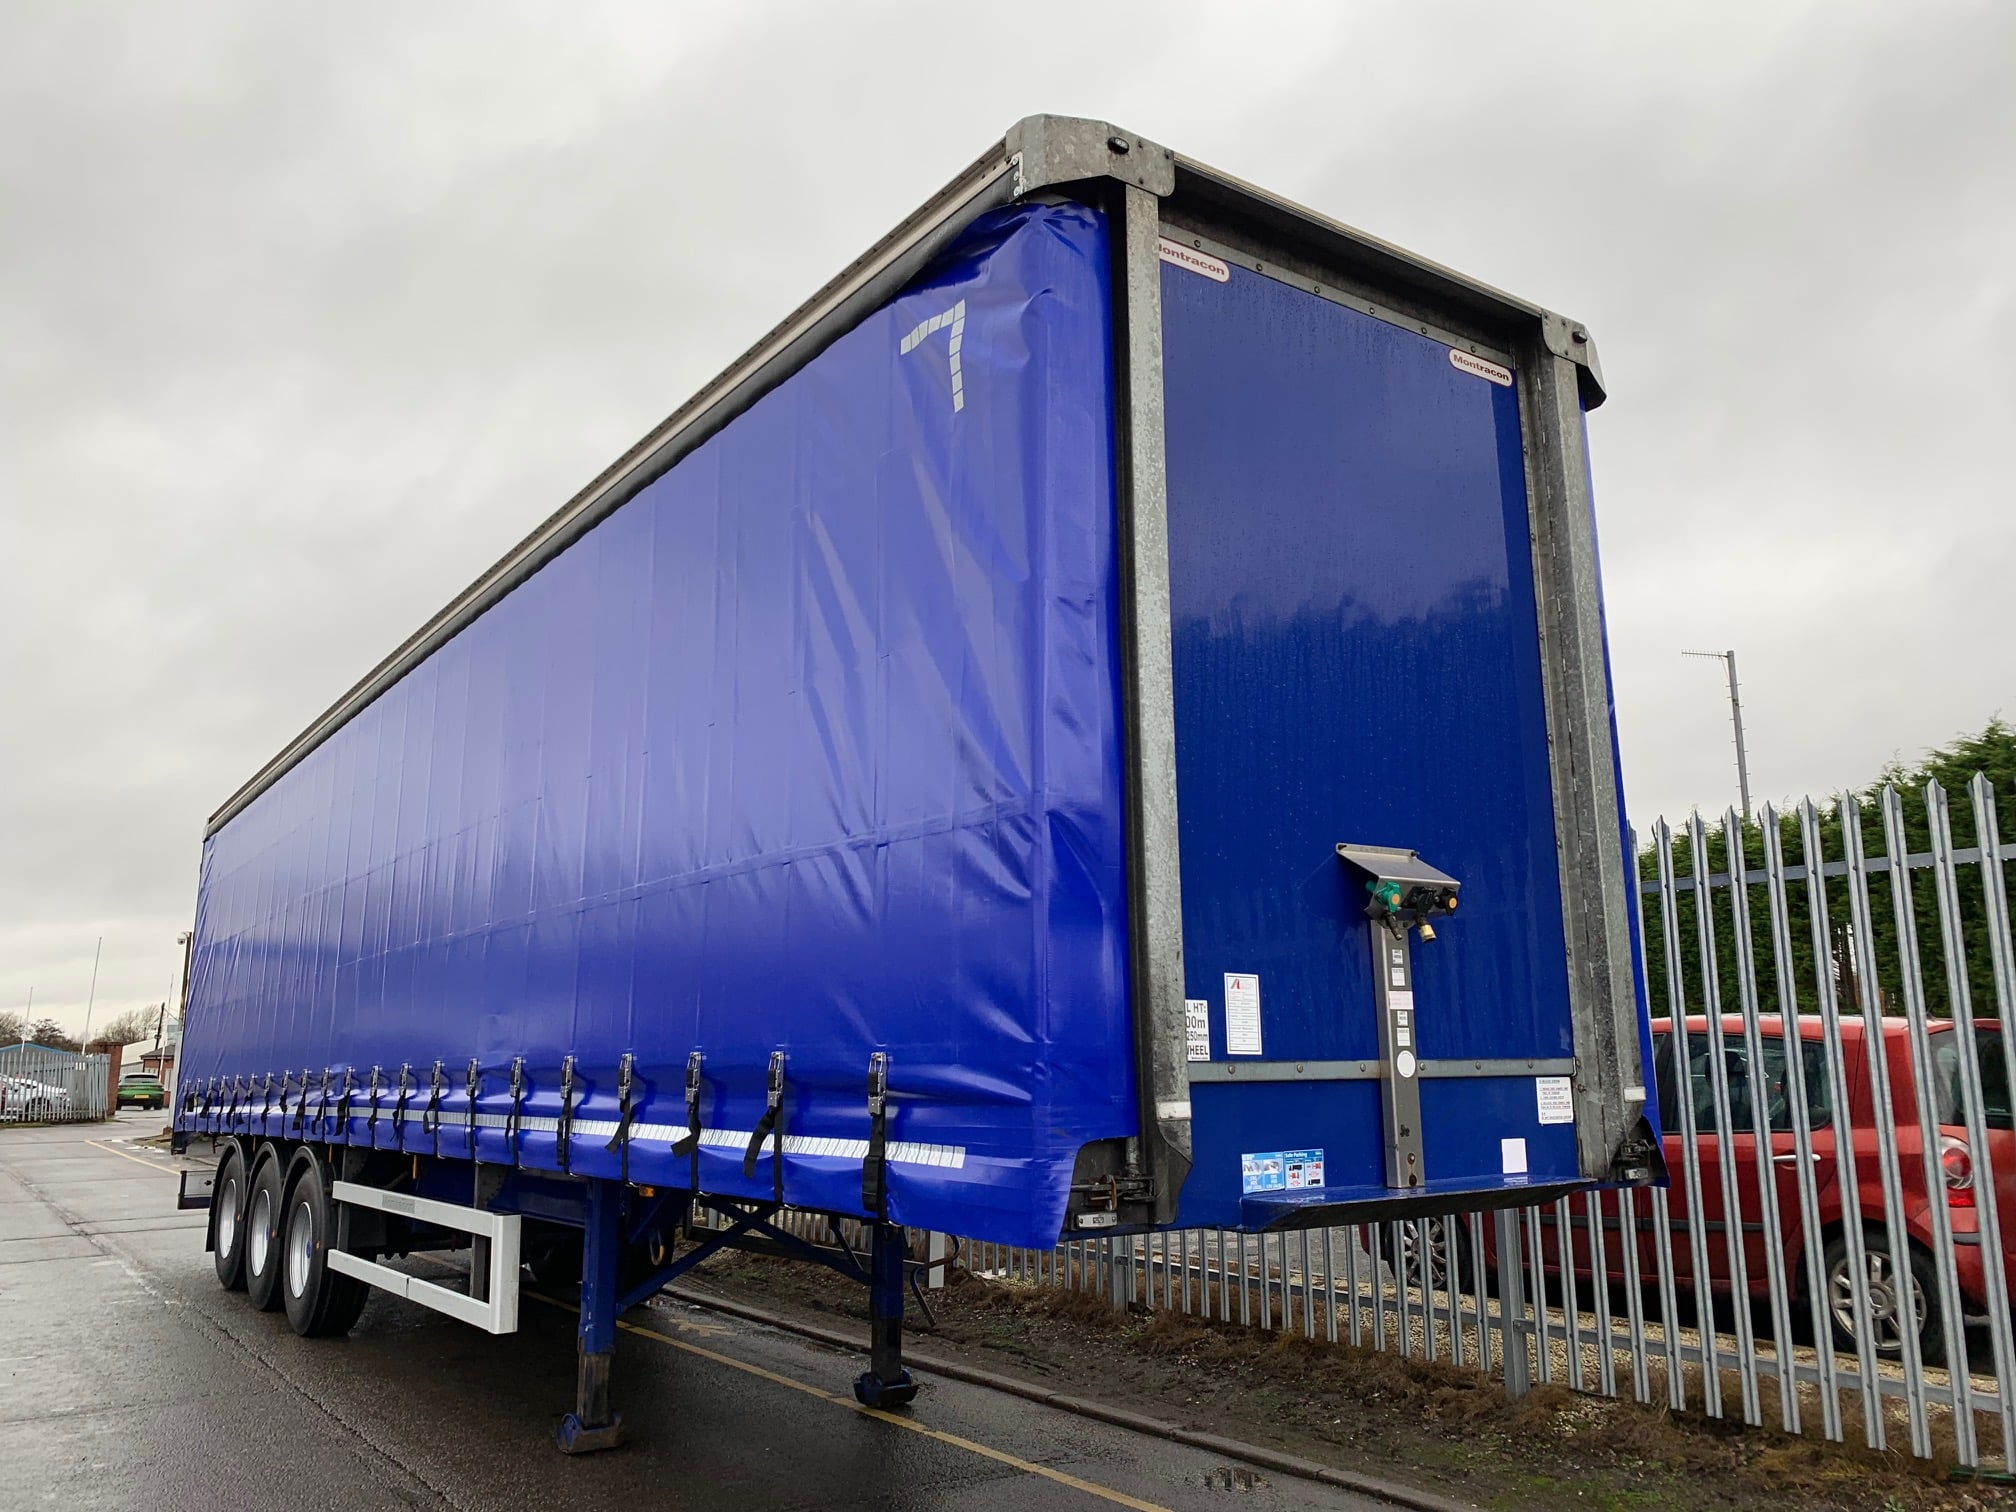 2014 Montracon Curtainsider. 4.2m External Height, 2.67m Internal Height, BPW Axles, Drum Brakes, Wisa Deck Floor, Barn Doors, 2 x Side Posts, Raise Lower Valve Facility.